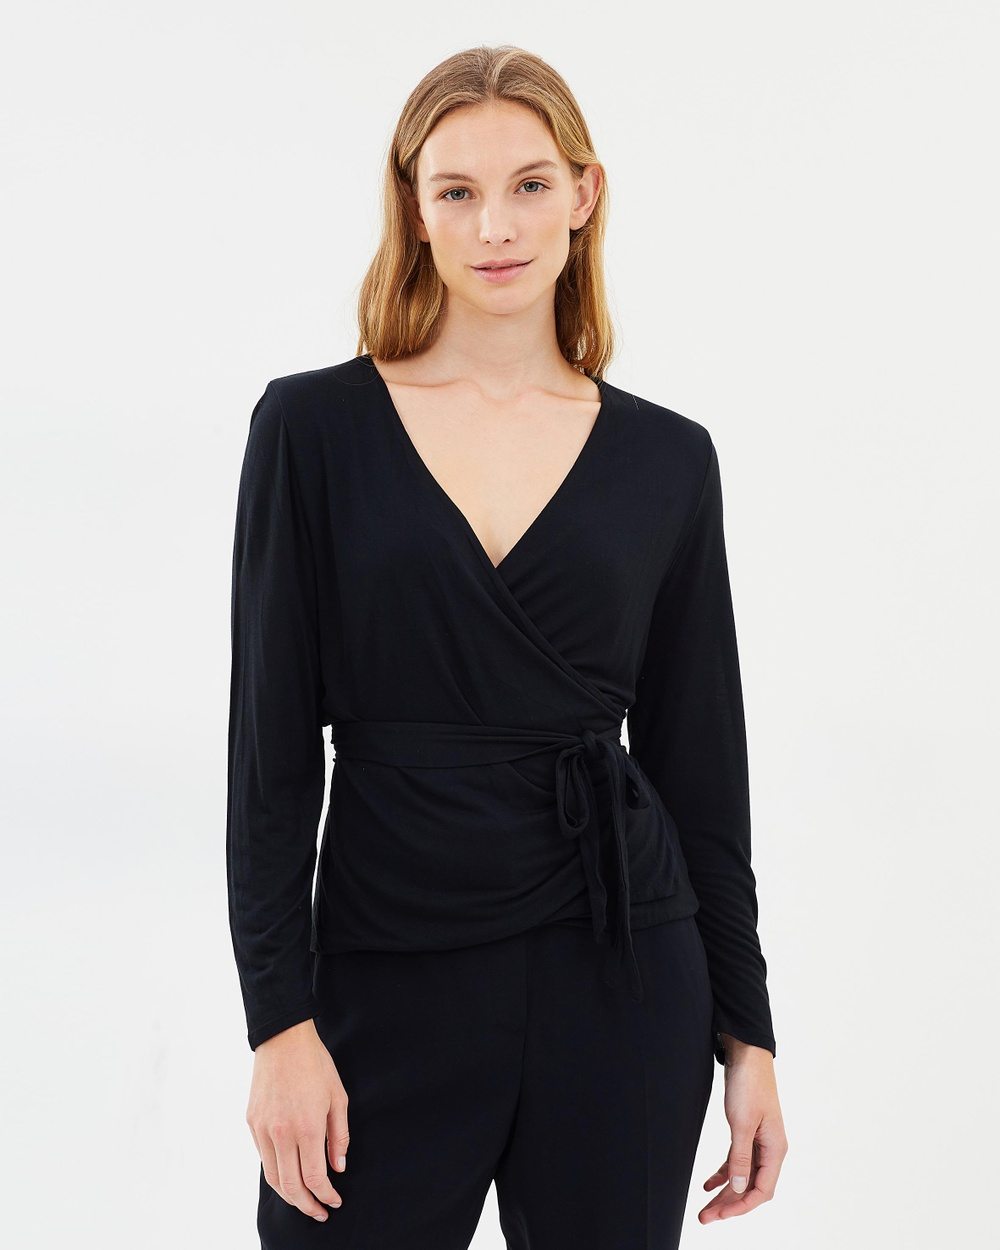 J.Crew Wrap and Tie Top Tops Black Wrap and Tie Top